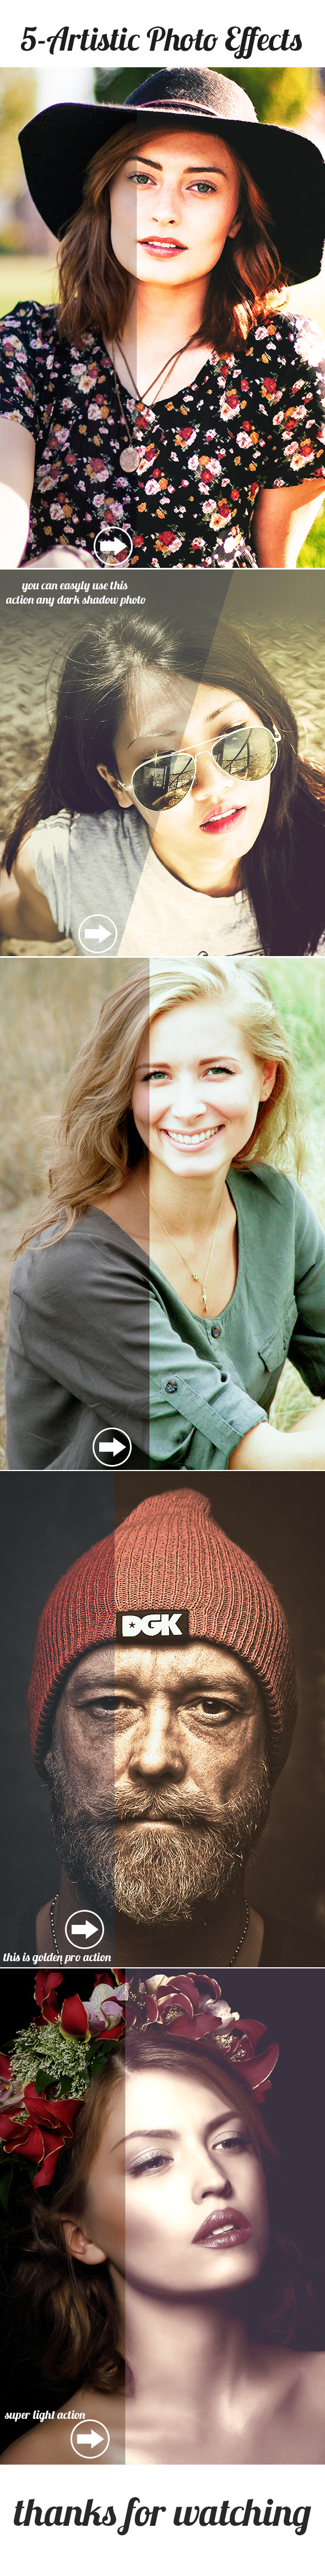 5 Artistic Photo Effects - Photo Effects Actions